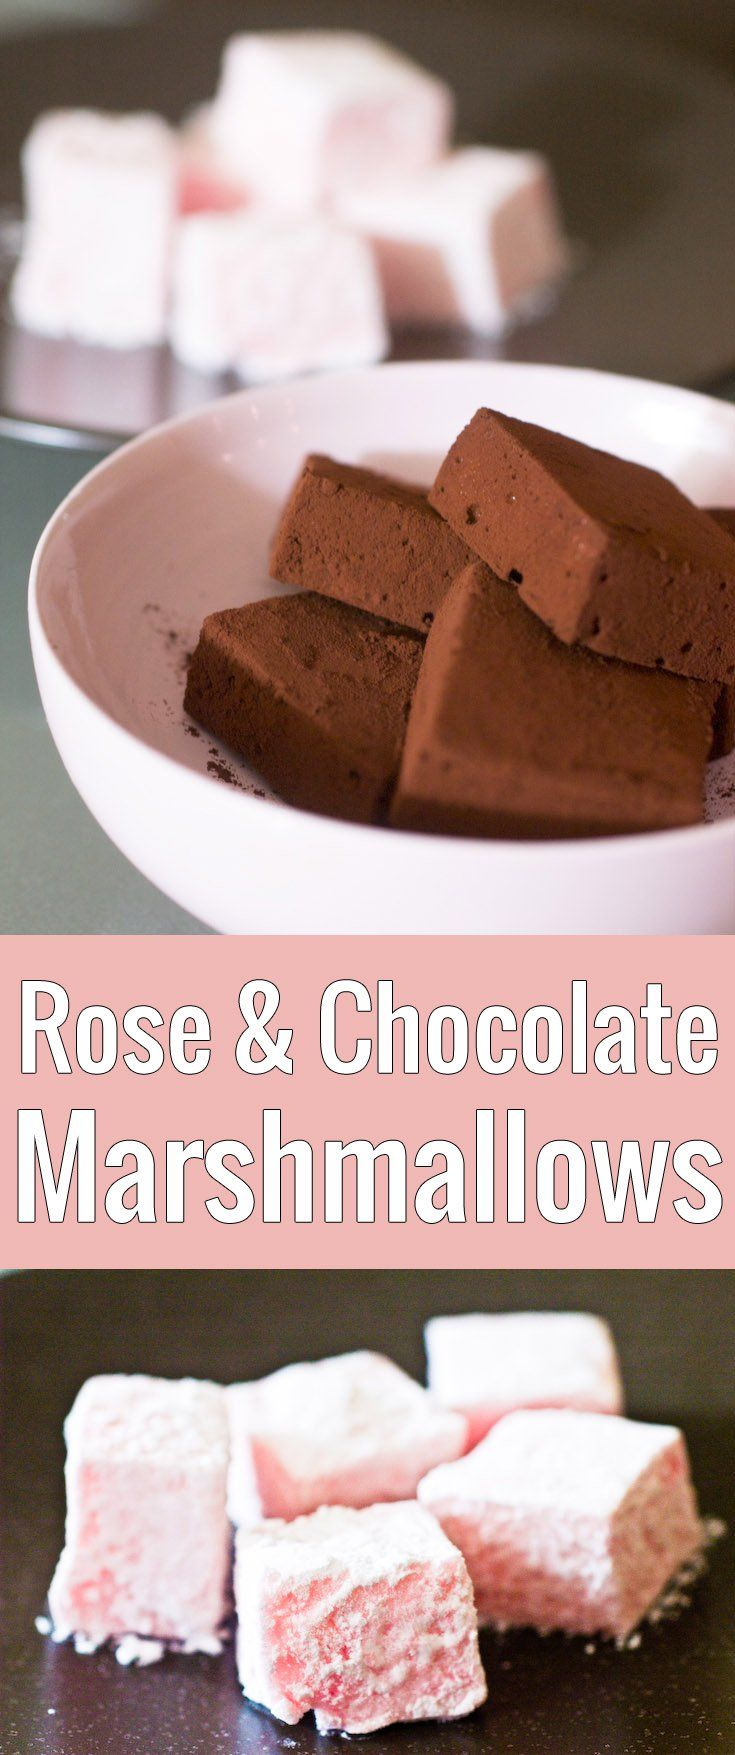 Guimauves are the French marshmallows, fluffy and plump, and they're super easy to make at home with this detailed recipe. Flavor them with chocolate or rose!